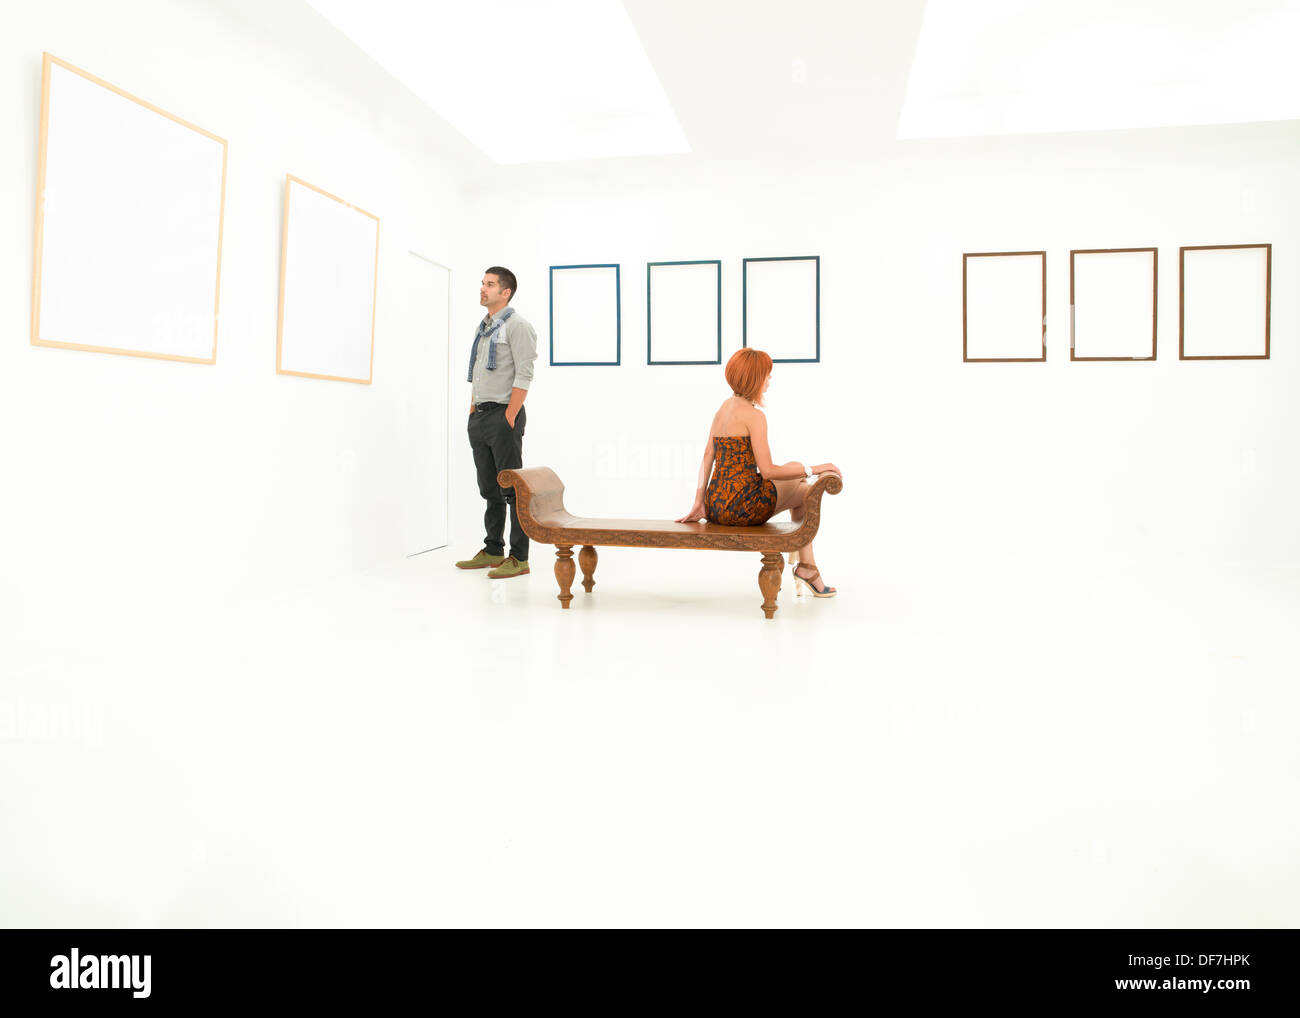 woman and man contemplating empty frames displayed on white walls - Stock Image